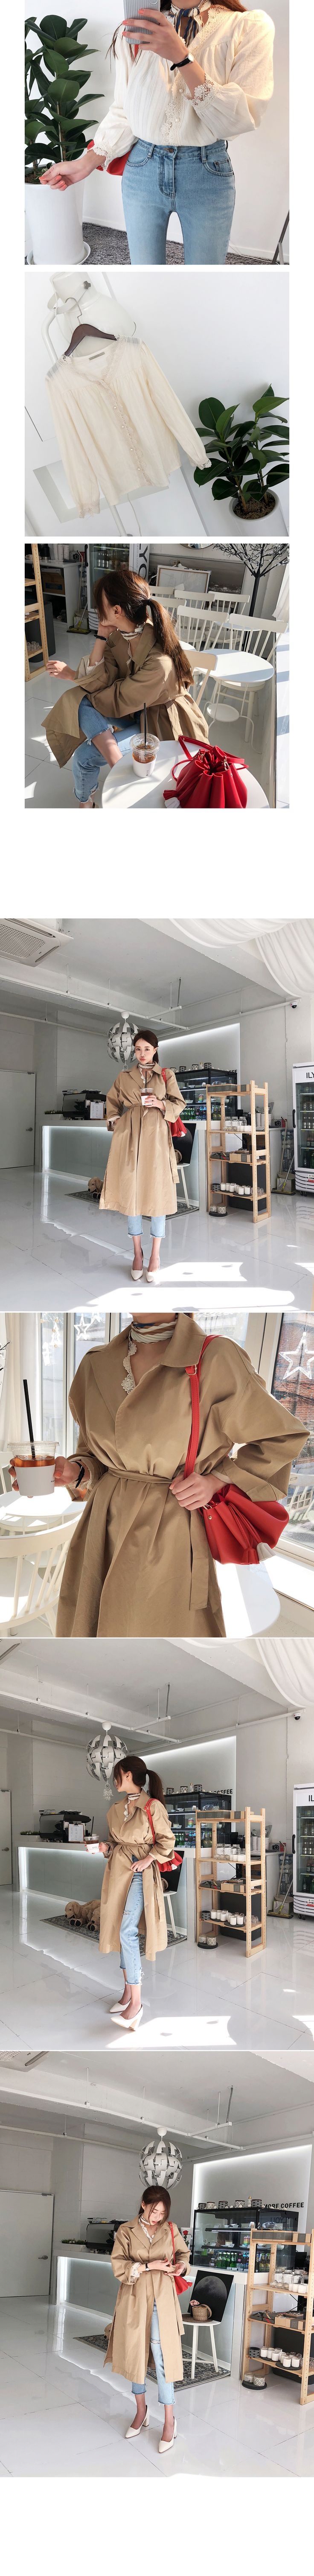 Korea women's clothing online store, Korea Women's Store MOCO BLING, trendy style clothing shopping, clothes shopping for the latest design BLOUSE Happy Soft-bl (Real-time order runaway!)